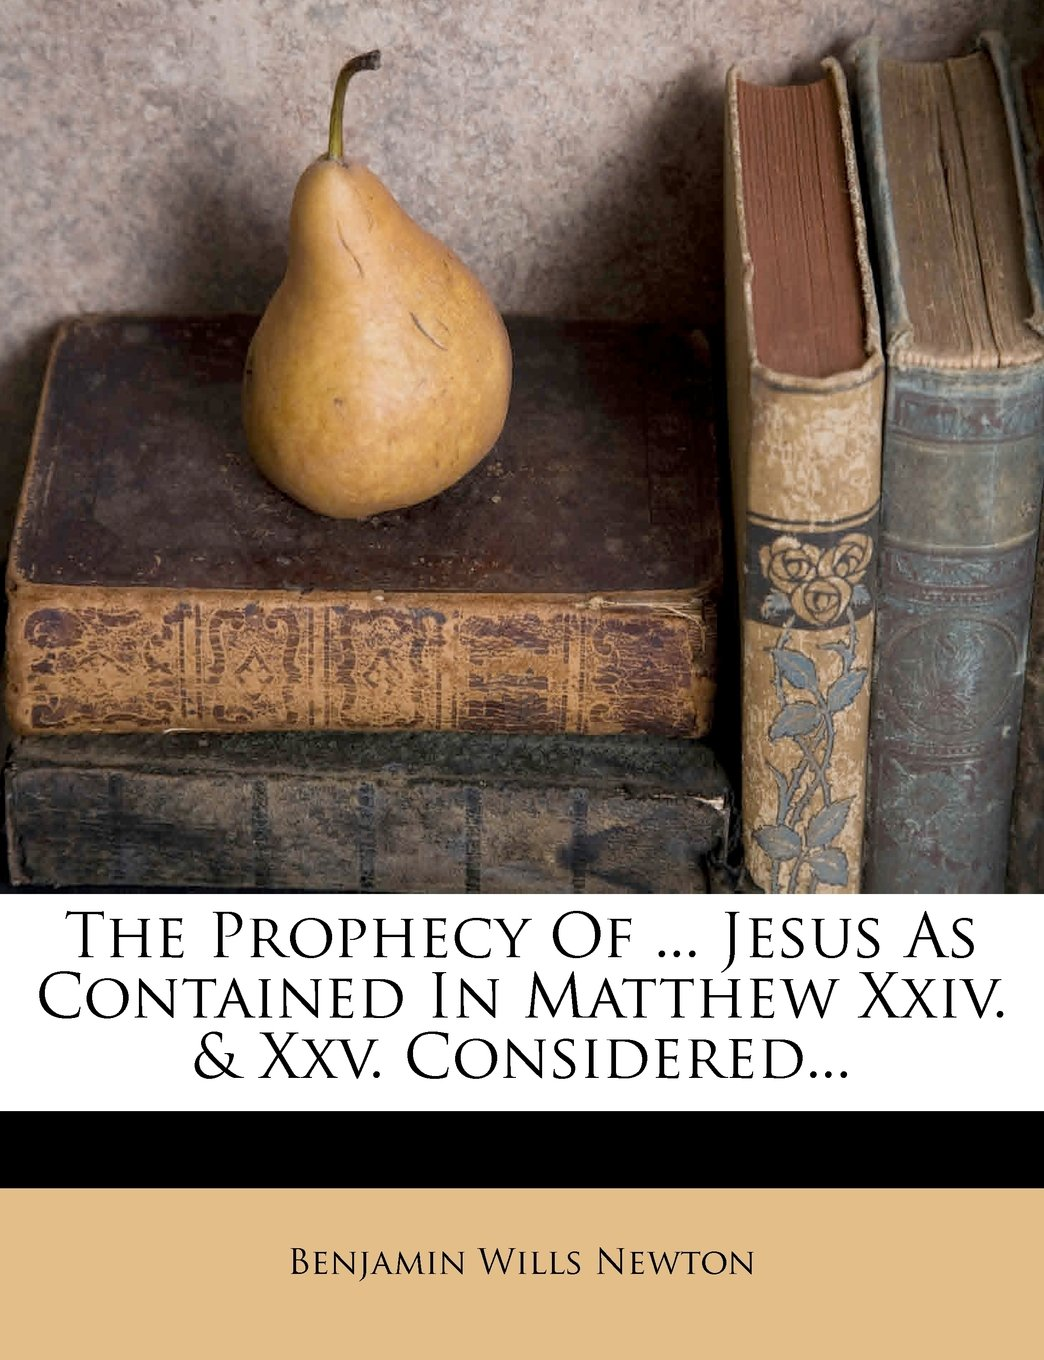 The Prophecy Of ... Jesus As Contained In Matthew Xxiv. & Xxv. Considered... pdf